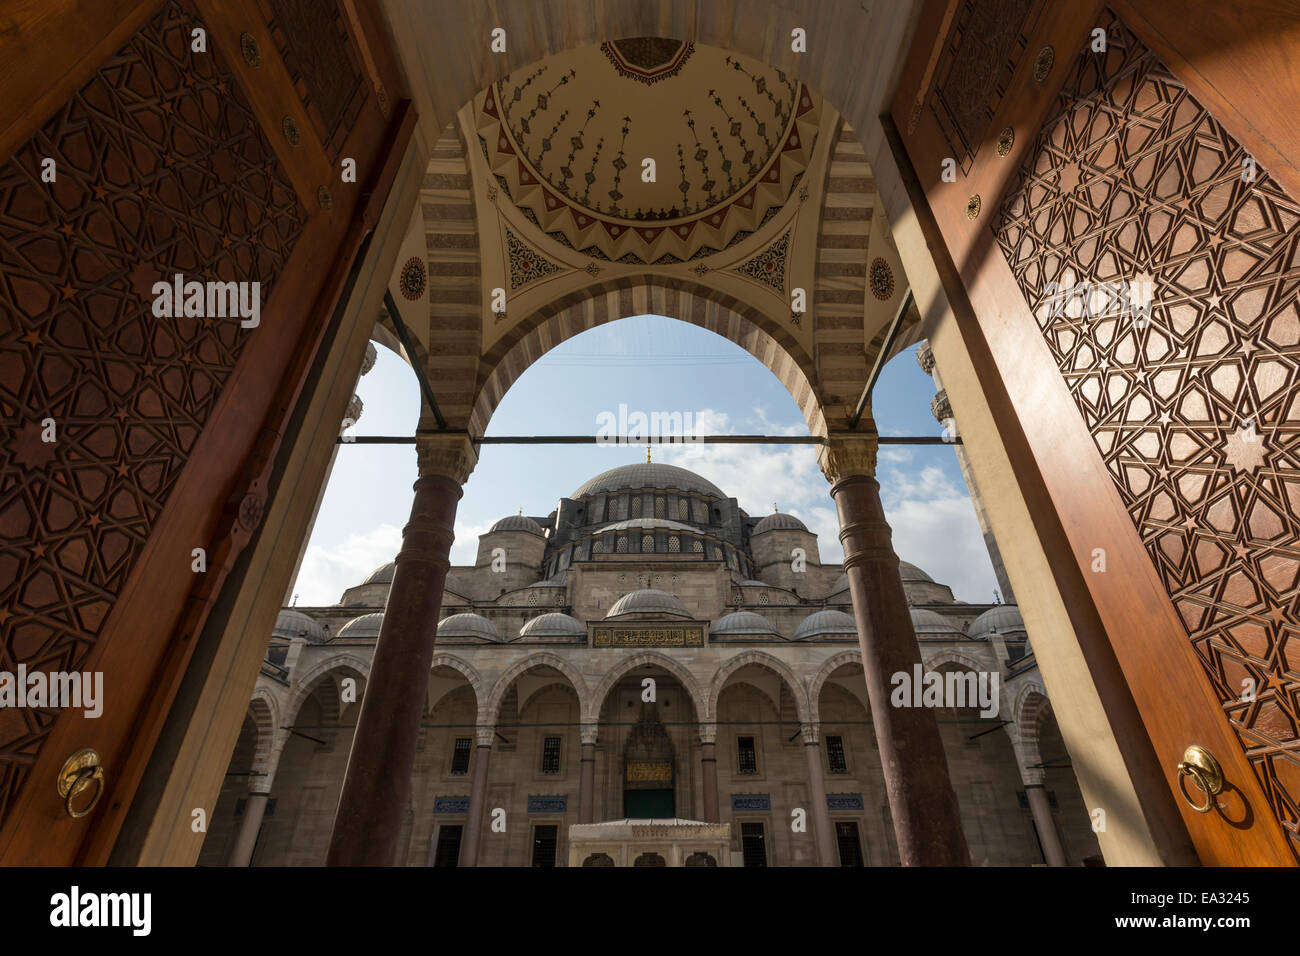 Ornate wooden doors, Courtyard entrance, early morning, Suleymaniye Mosque, Bazaar District, Istanbul, Turkey, Europe Stock Photo